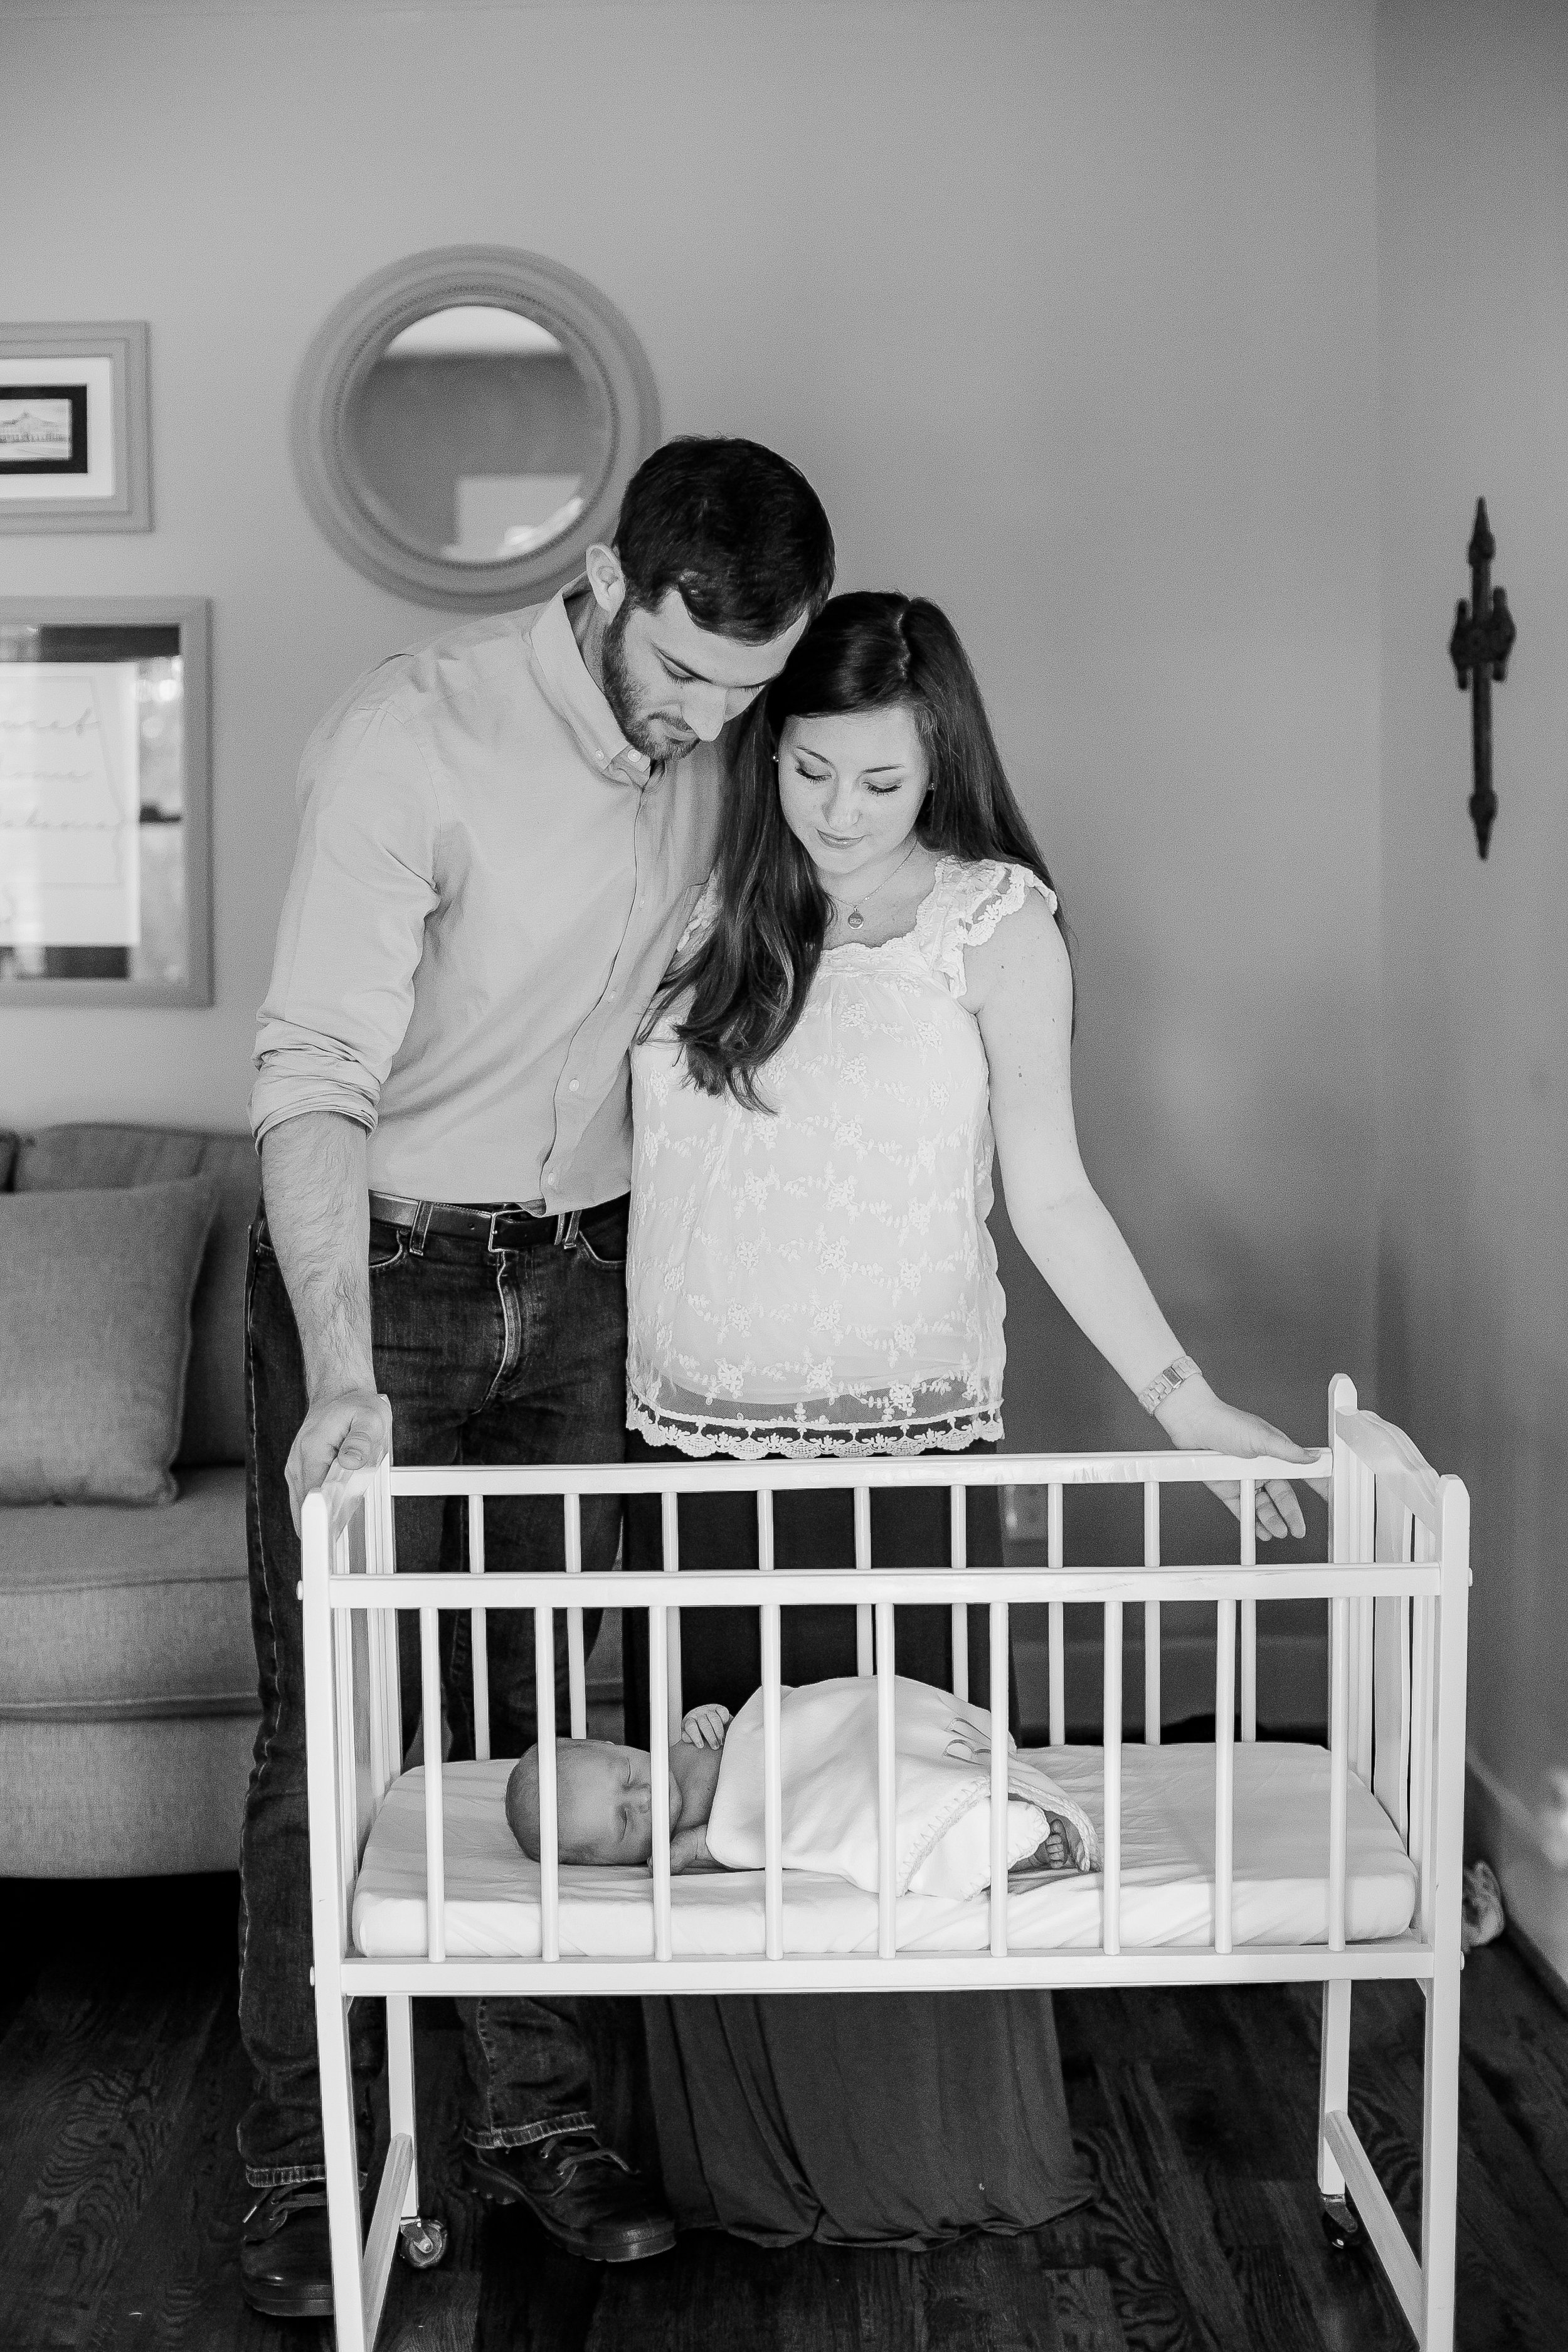 Becoming a family of three--this cradle belonged to Bradley's great grandmother. She slept in it as a baby, as did his mom, as did Bradley, and now this generation of babes. So special.